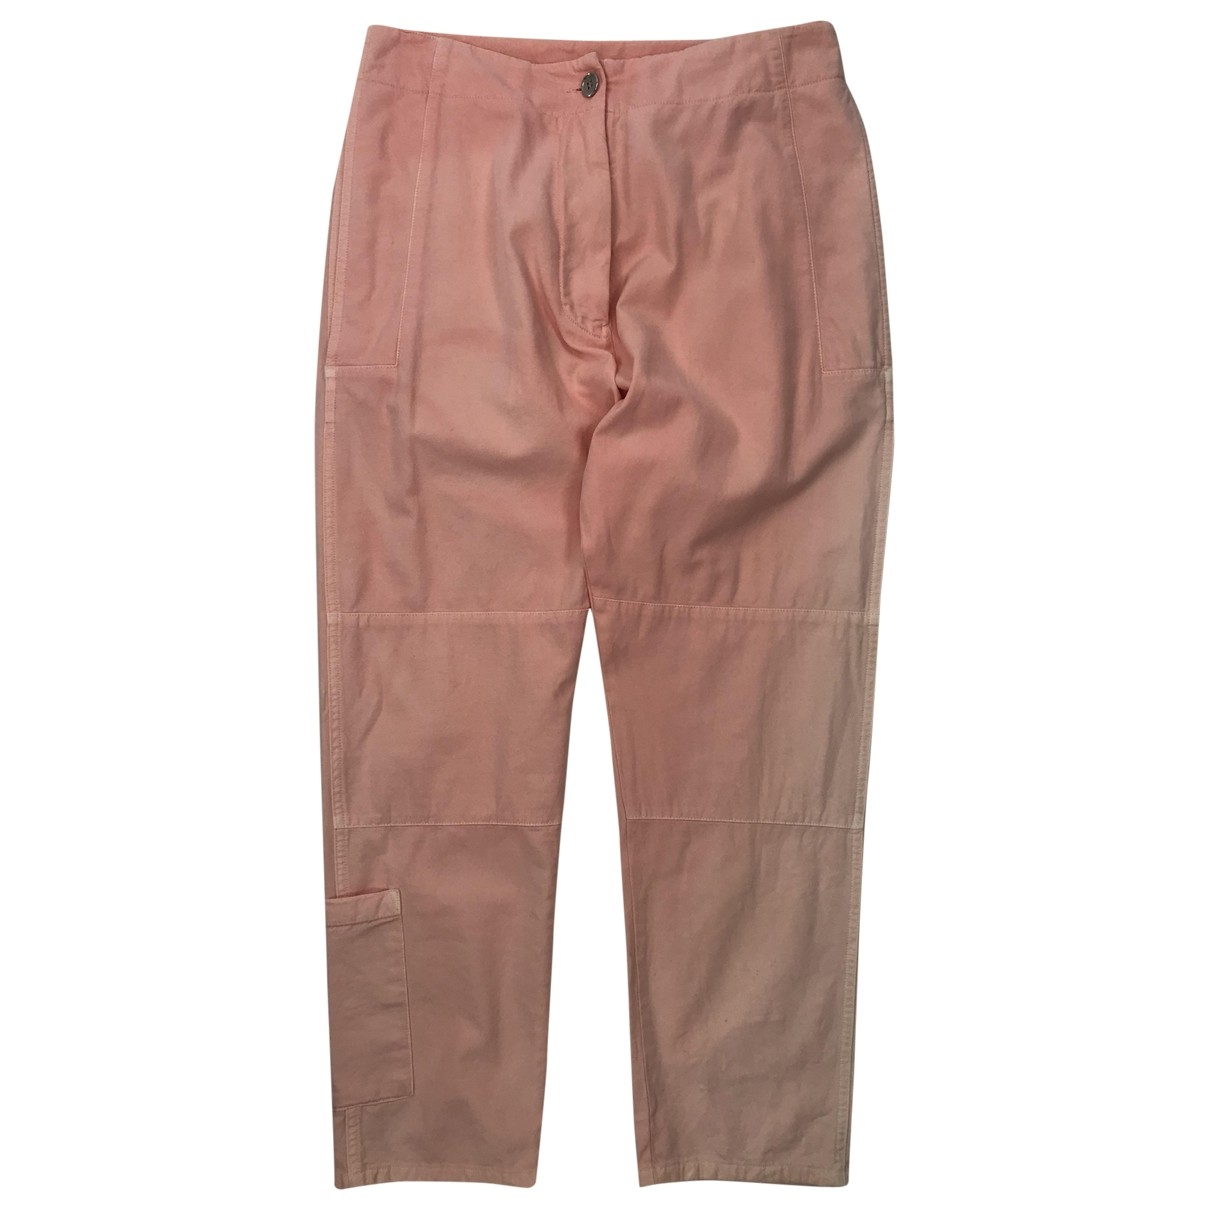 Mm6 N Pink Cotton Trousers for Women 40 FR